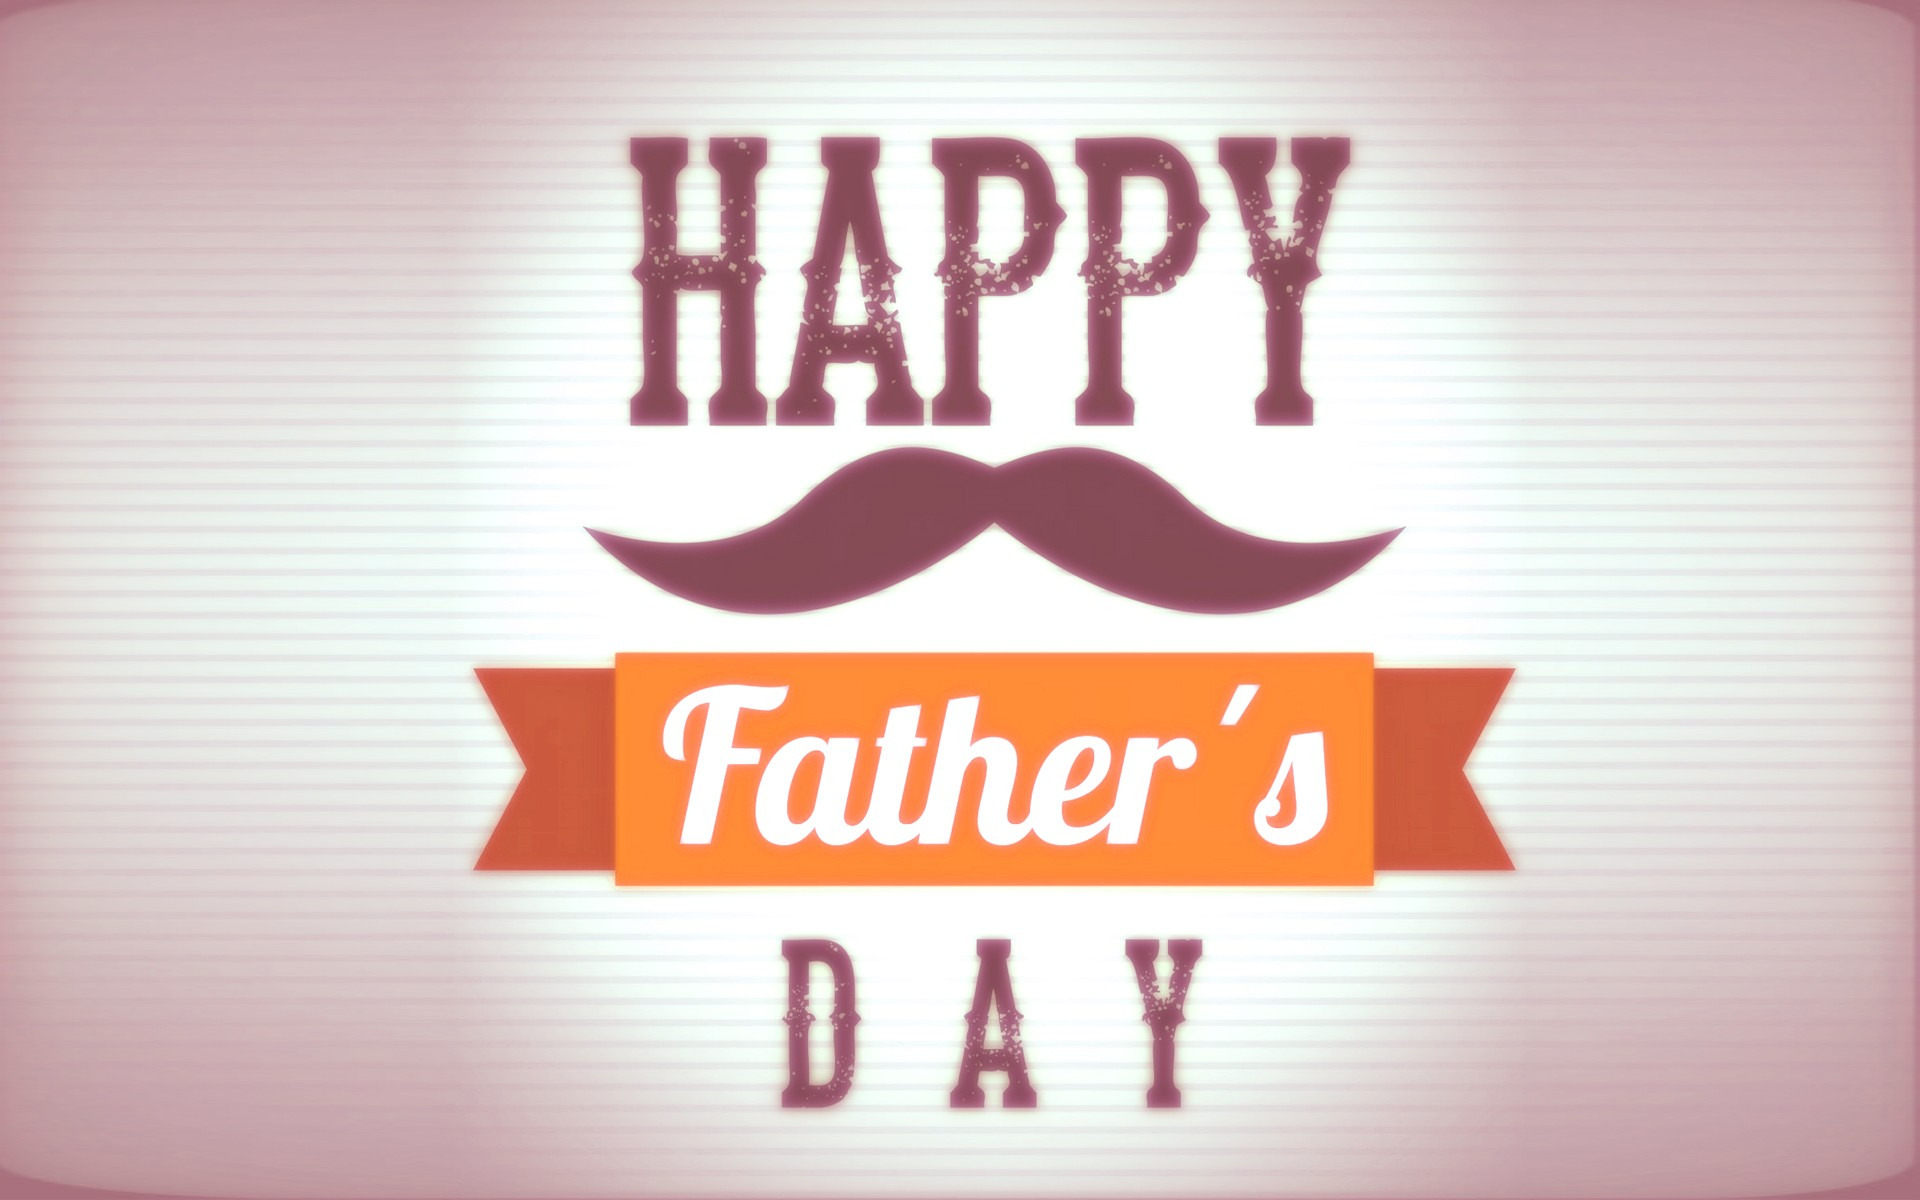 happy fathersday 2016 HD wallpapers images pictures cover photos (13)